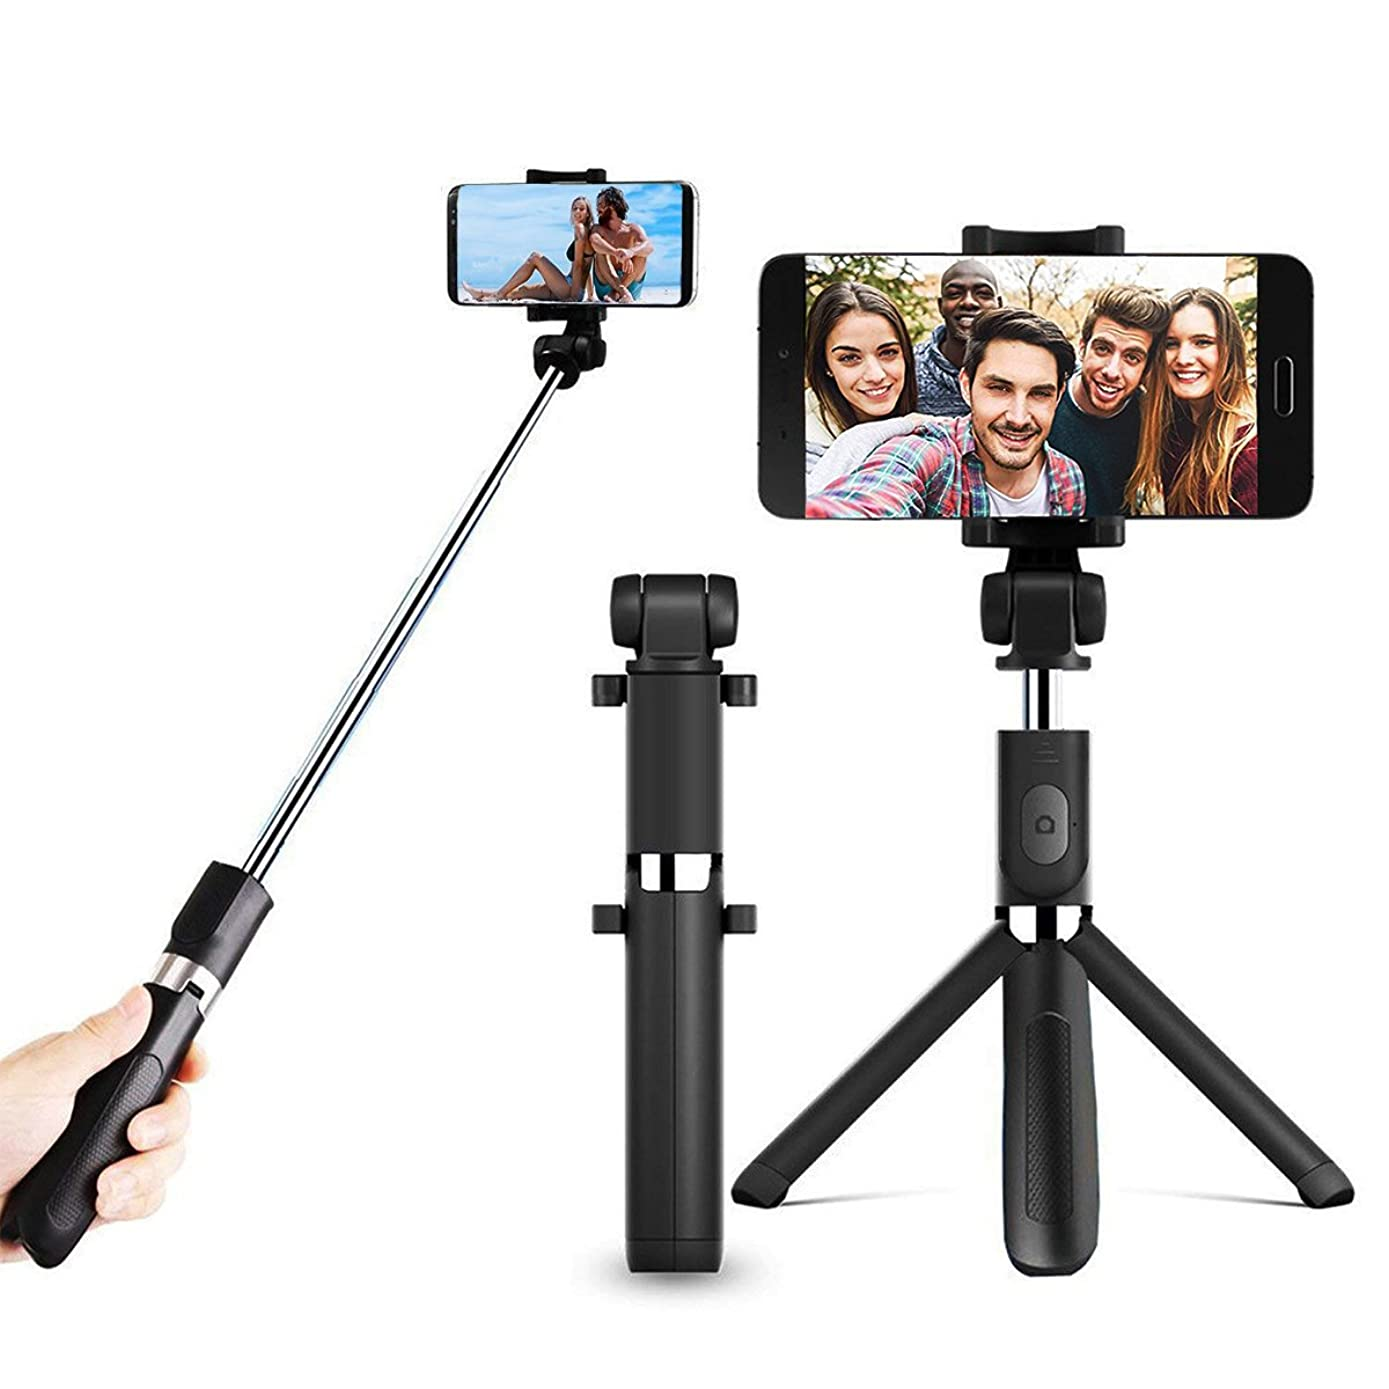 Potok Selfie Stick Tripod, Extendable Cell Phone Stand Portable Monopod with Bluetooth Wireless Remote for iPhone X/iPhone 8/8 Plus/iPhone 7/iPhone 7 Plus/Galaxy S9/S9 Plus/Note 8/S8/S8 Plus/More